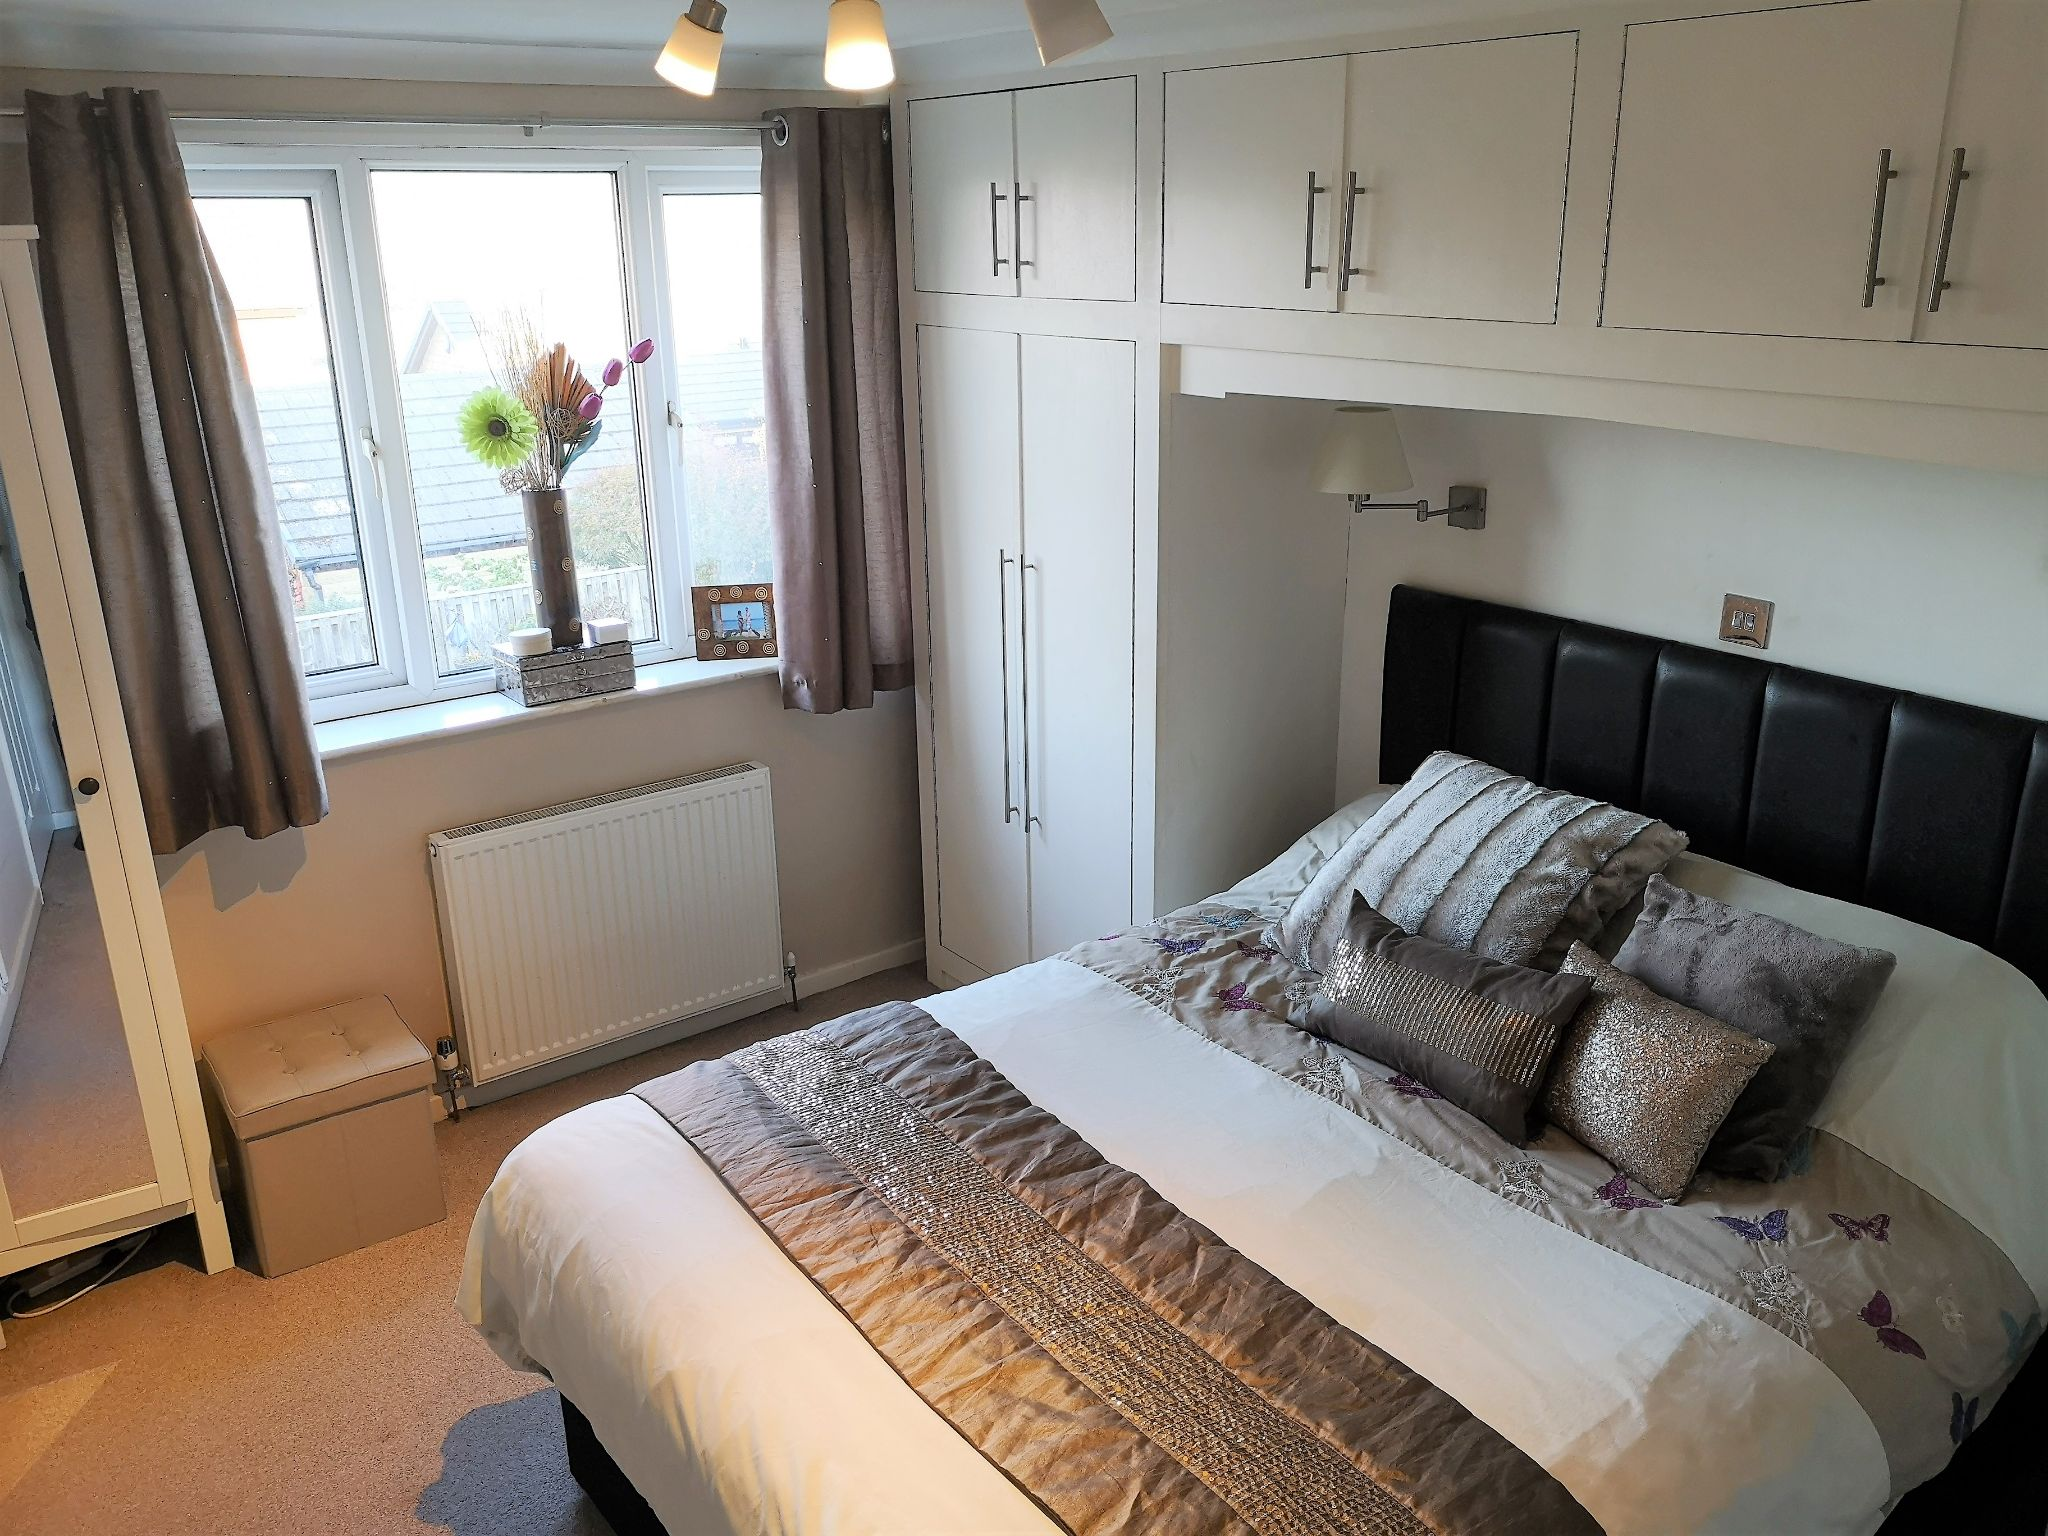 3 bedroom semi-detached house SSTC in Huddersfield - Photograph 10